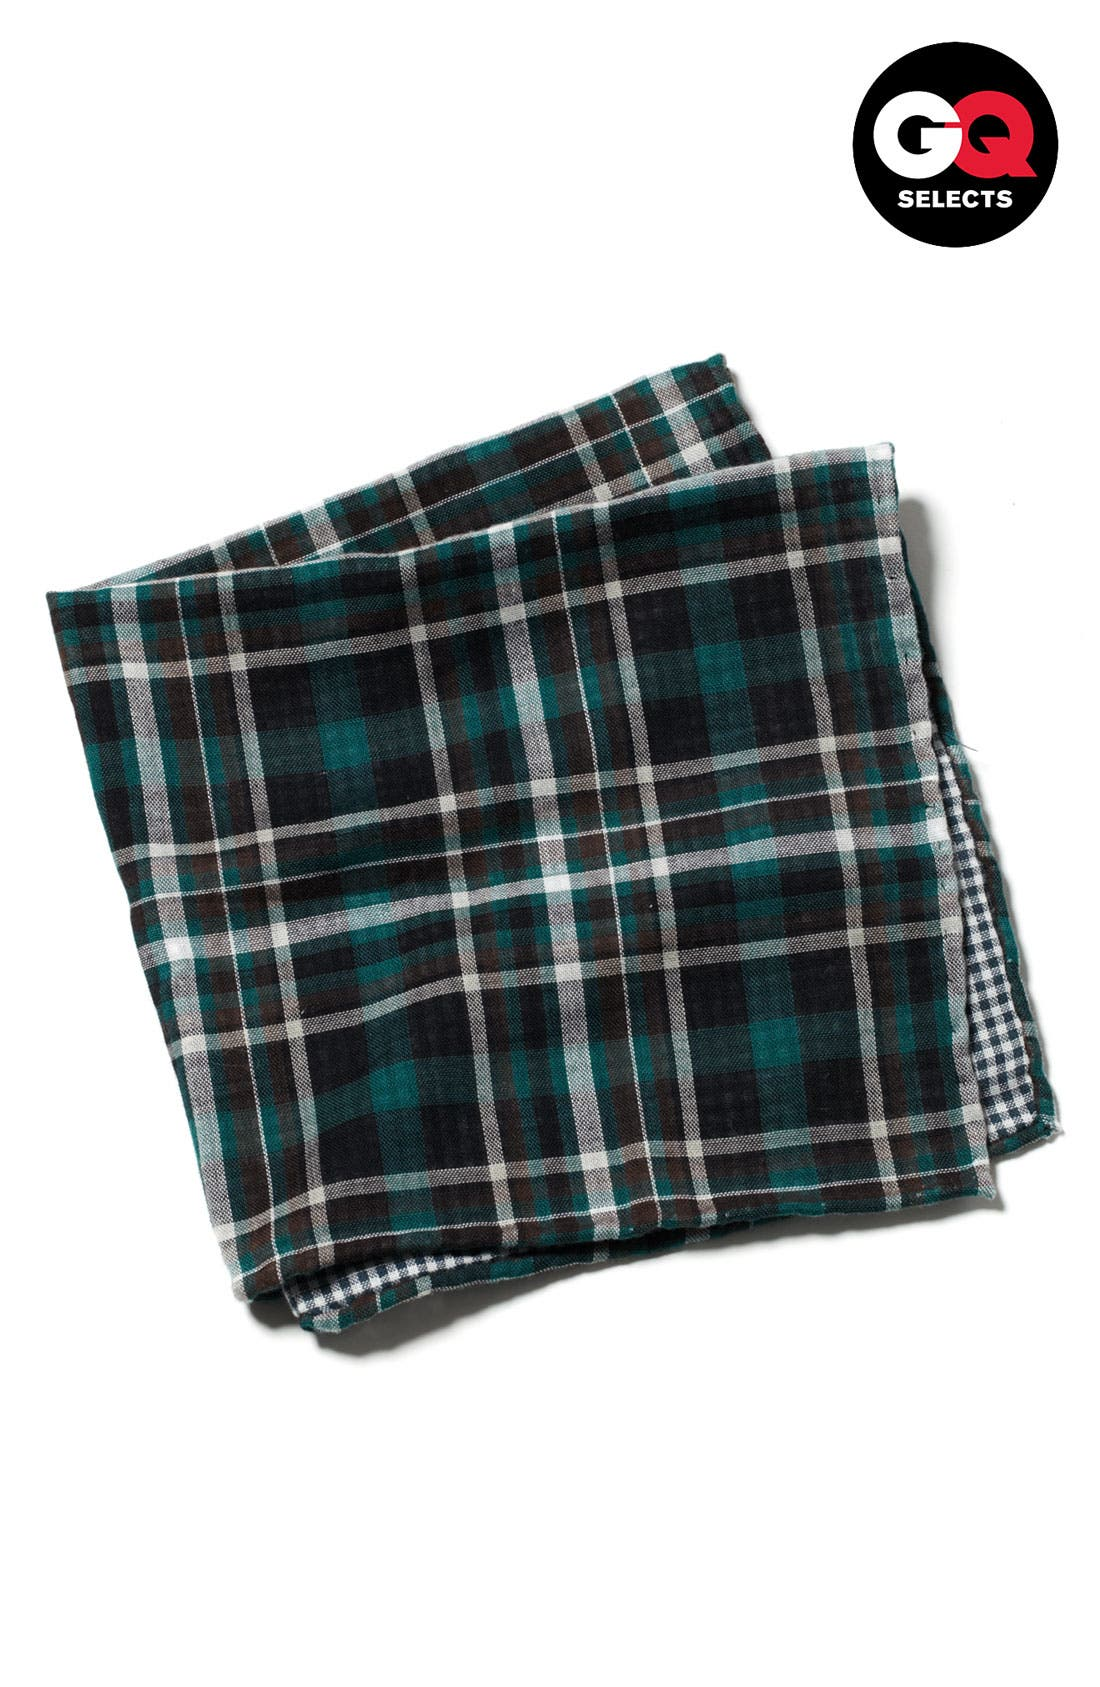 Alternate Image 1 Selected - The Tie Bar Plaid Cotton Flannel Pocket Square